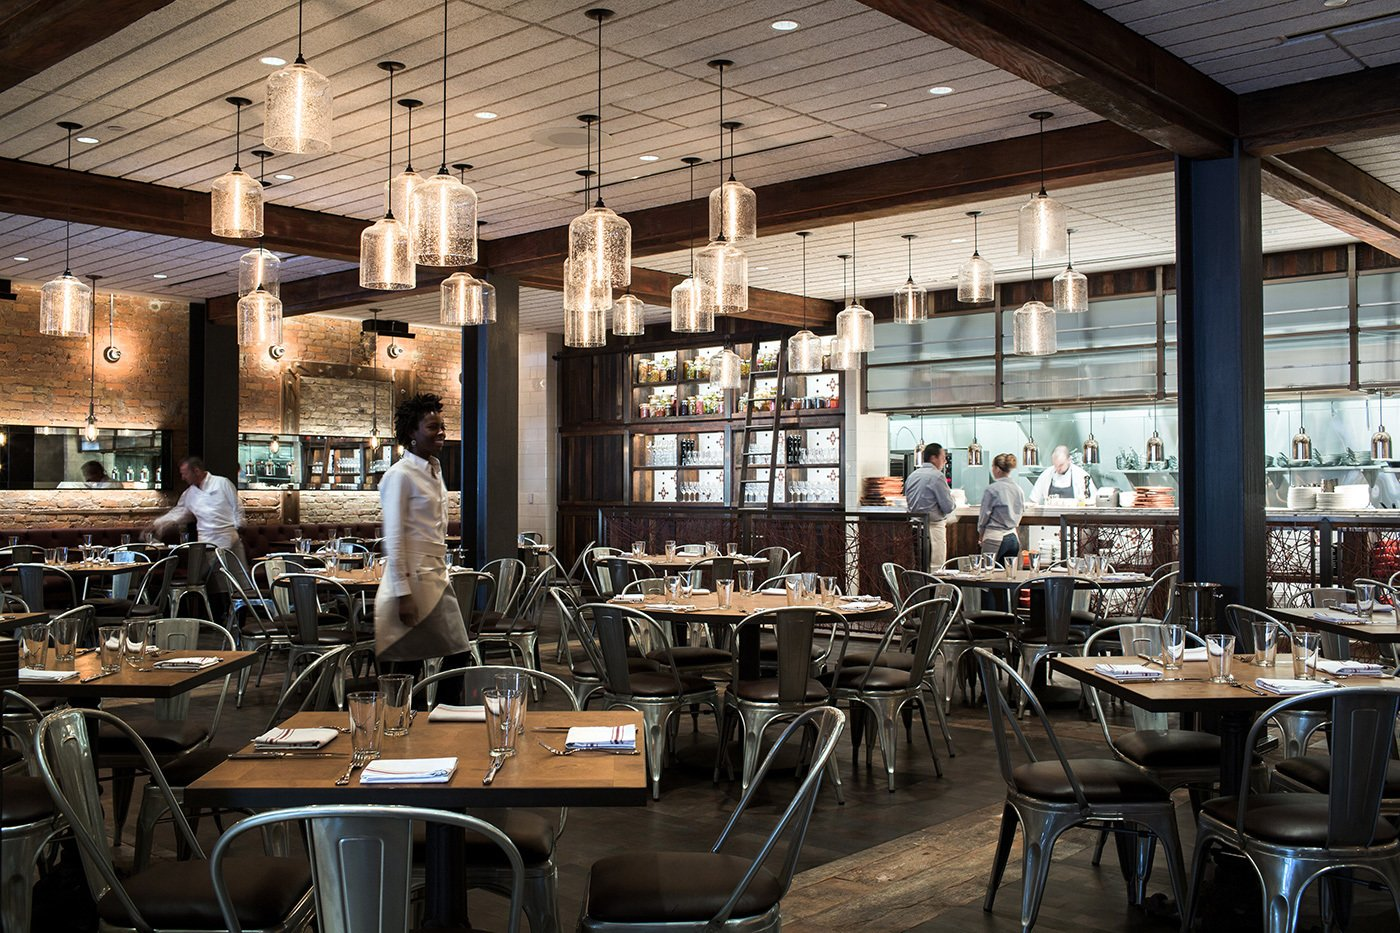 Photo 1 of 4 in Modern Restaurant Pendant Lights Add to Charm of Popular Dallas Eatery